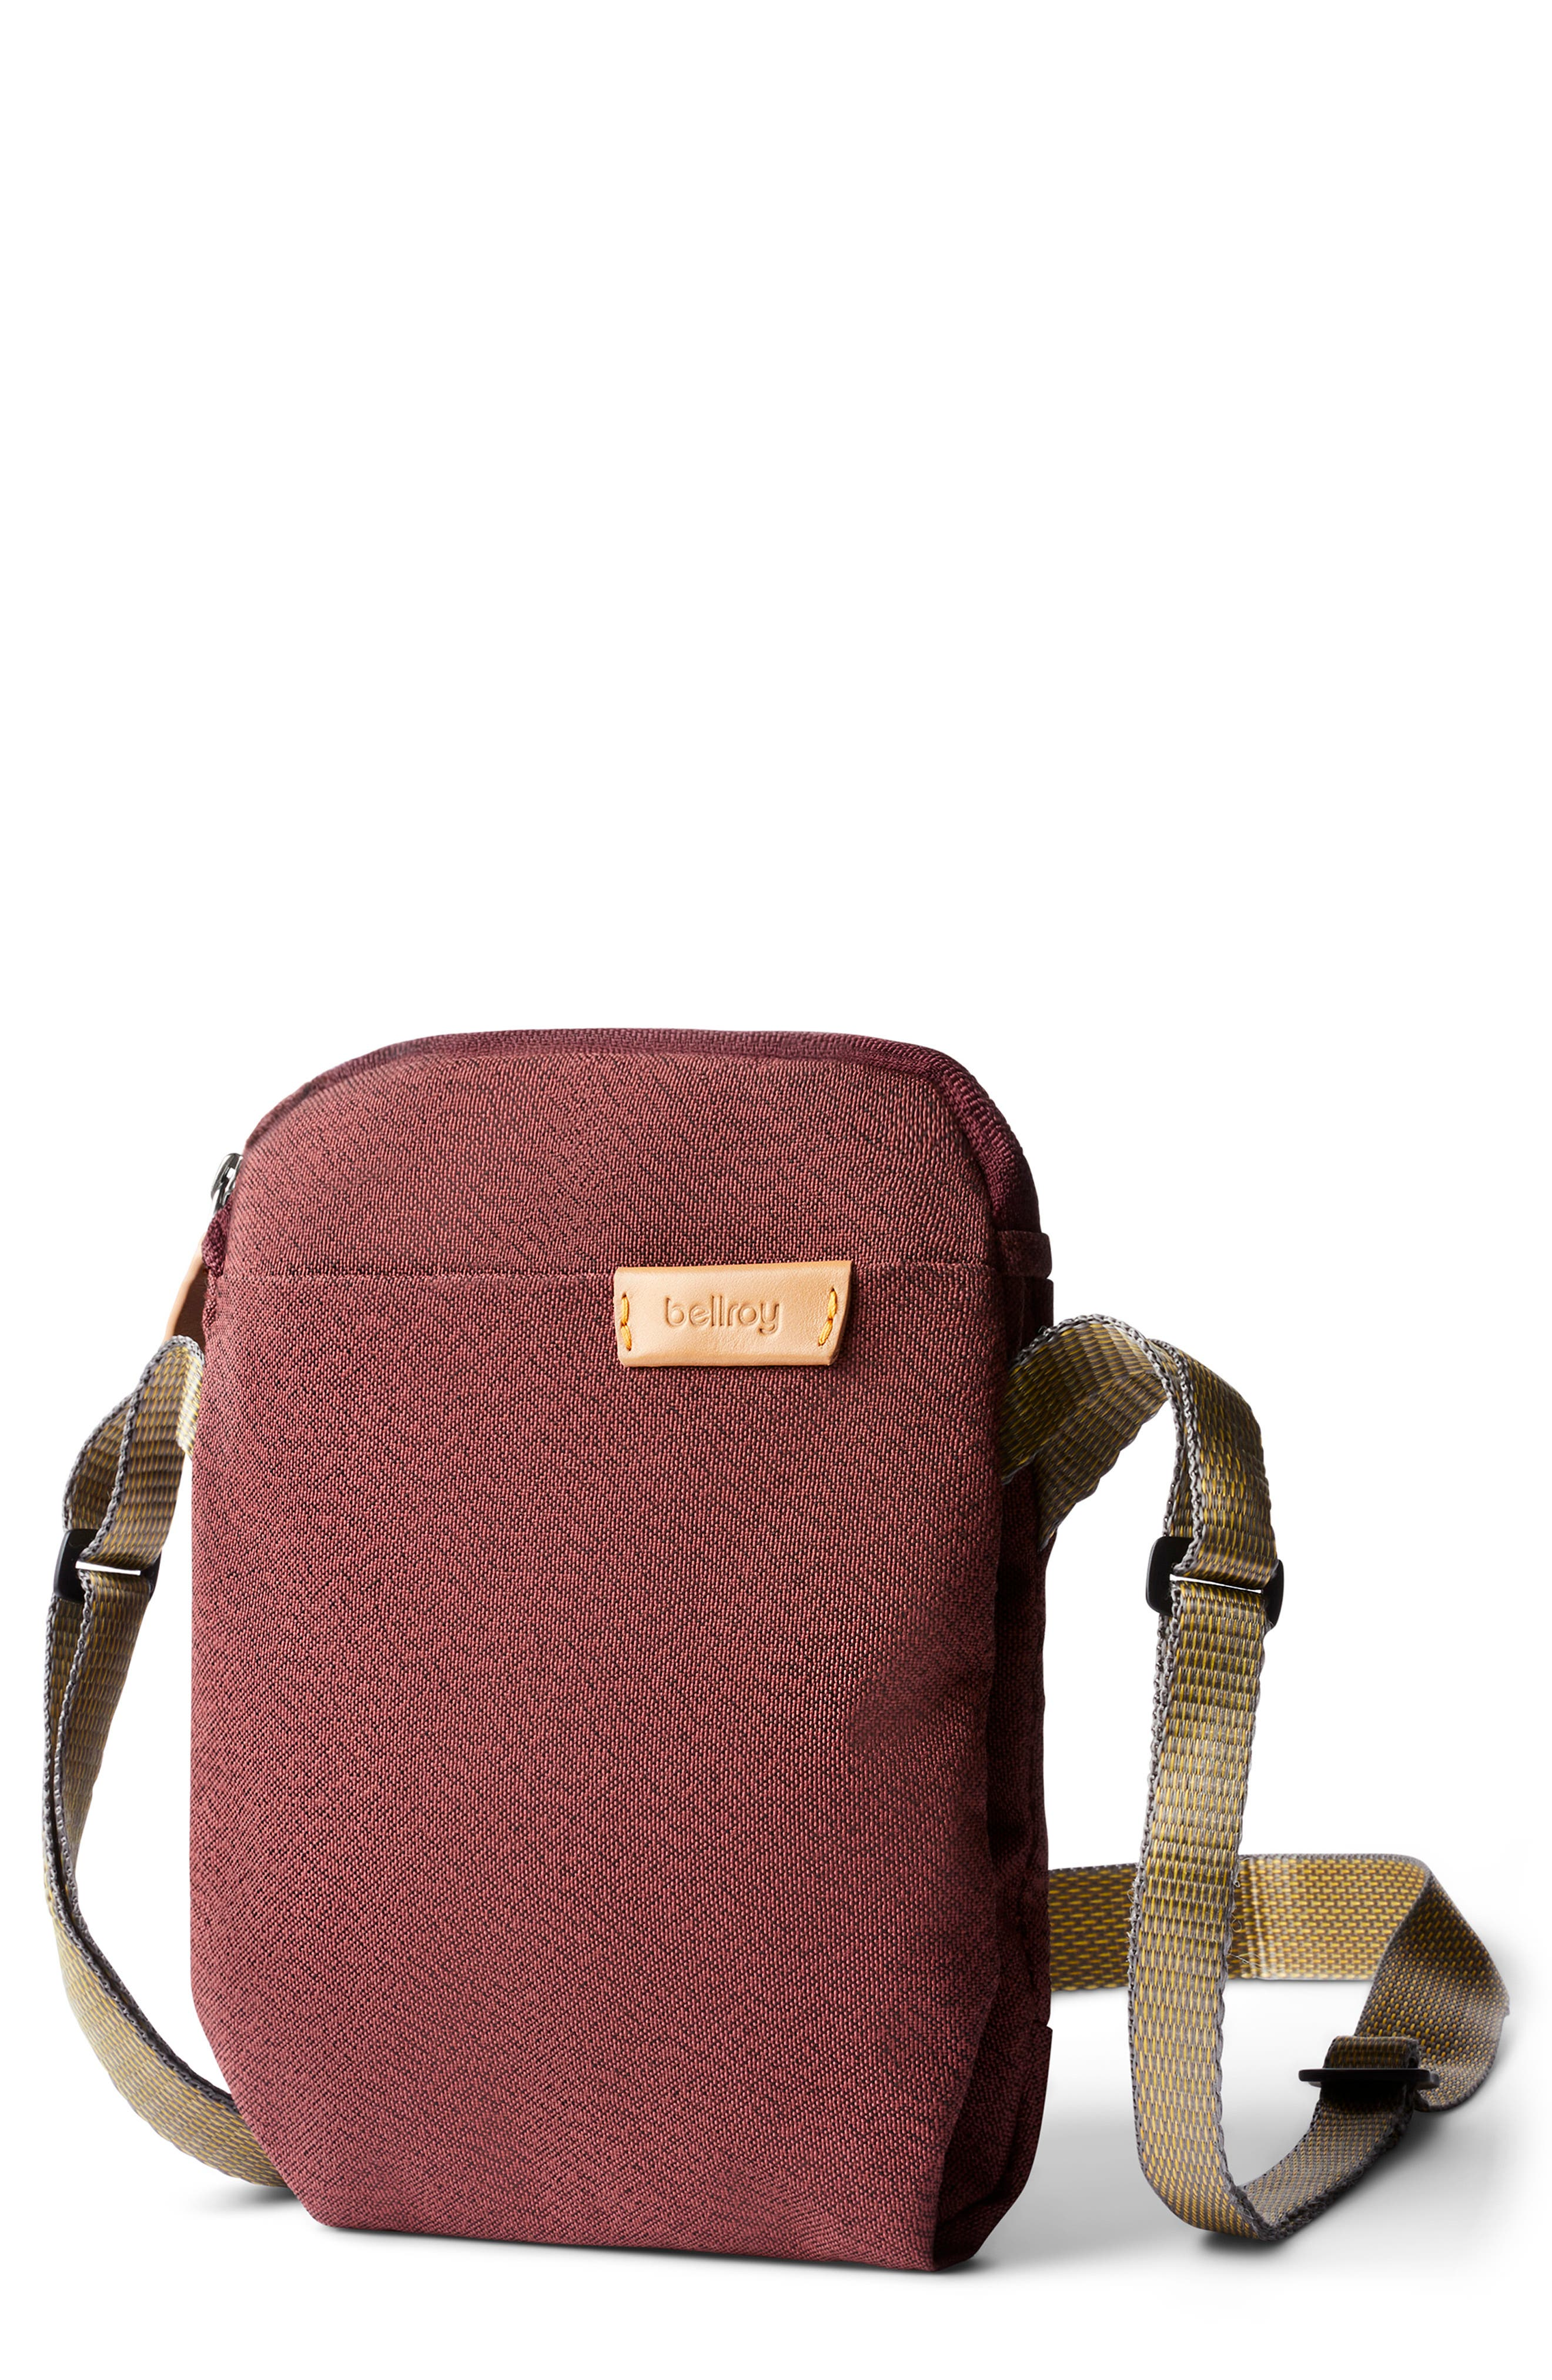 Water Repellent City Pouch Crossbody Bag